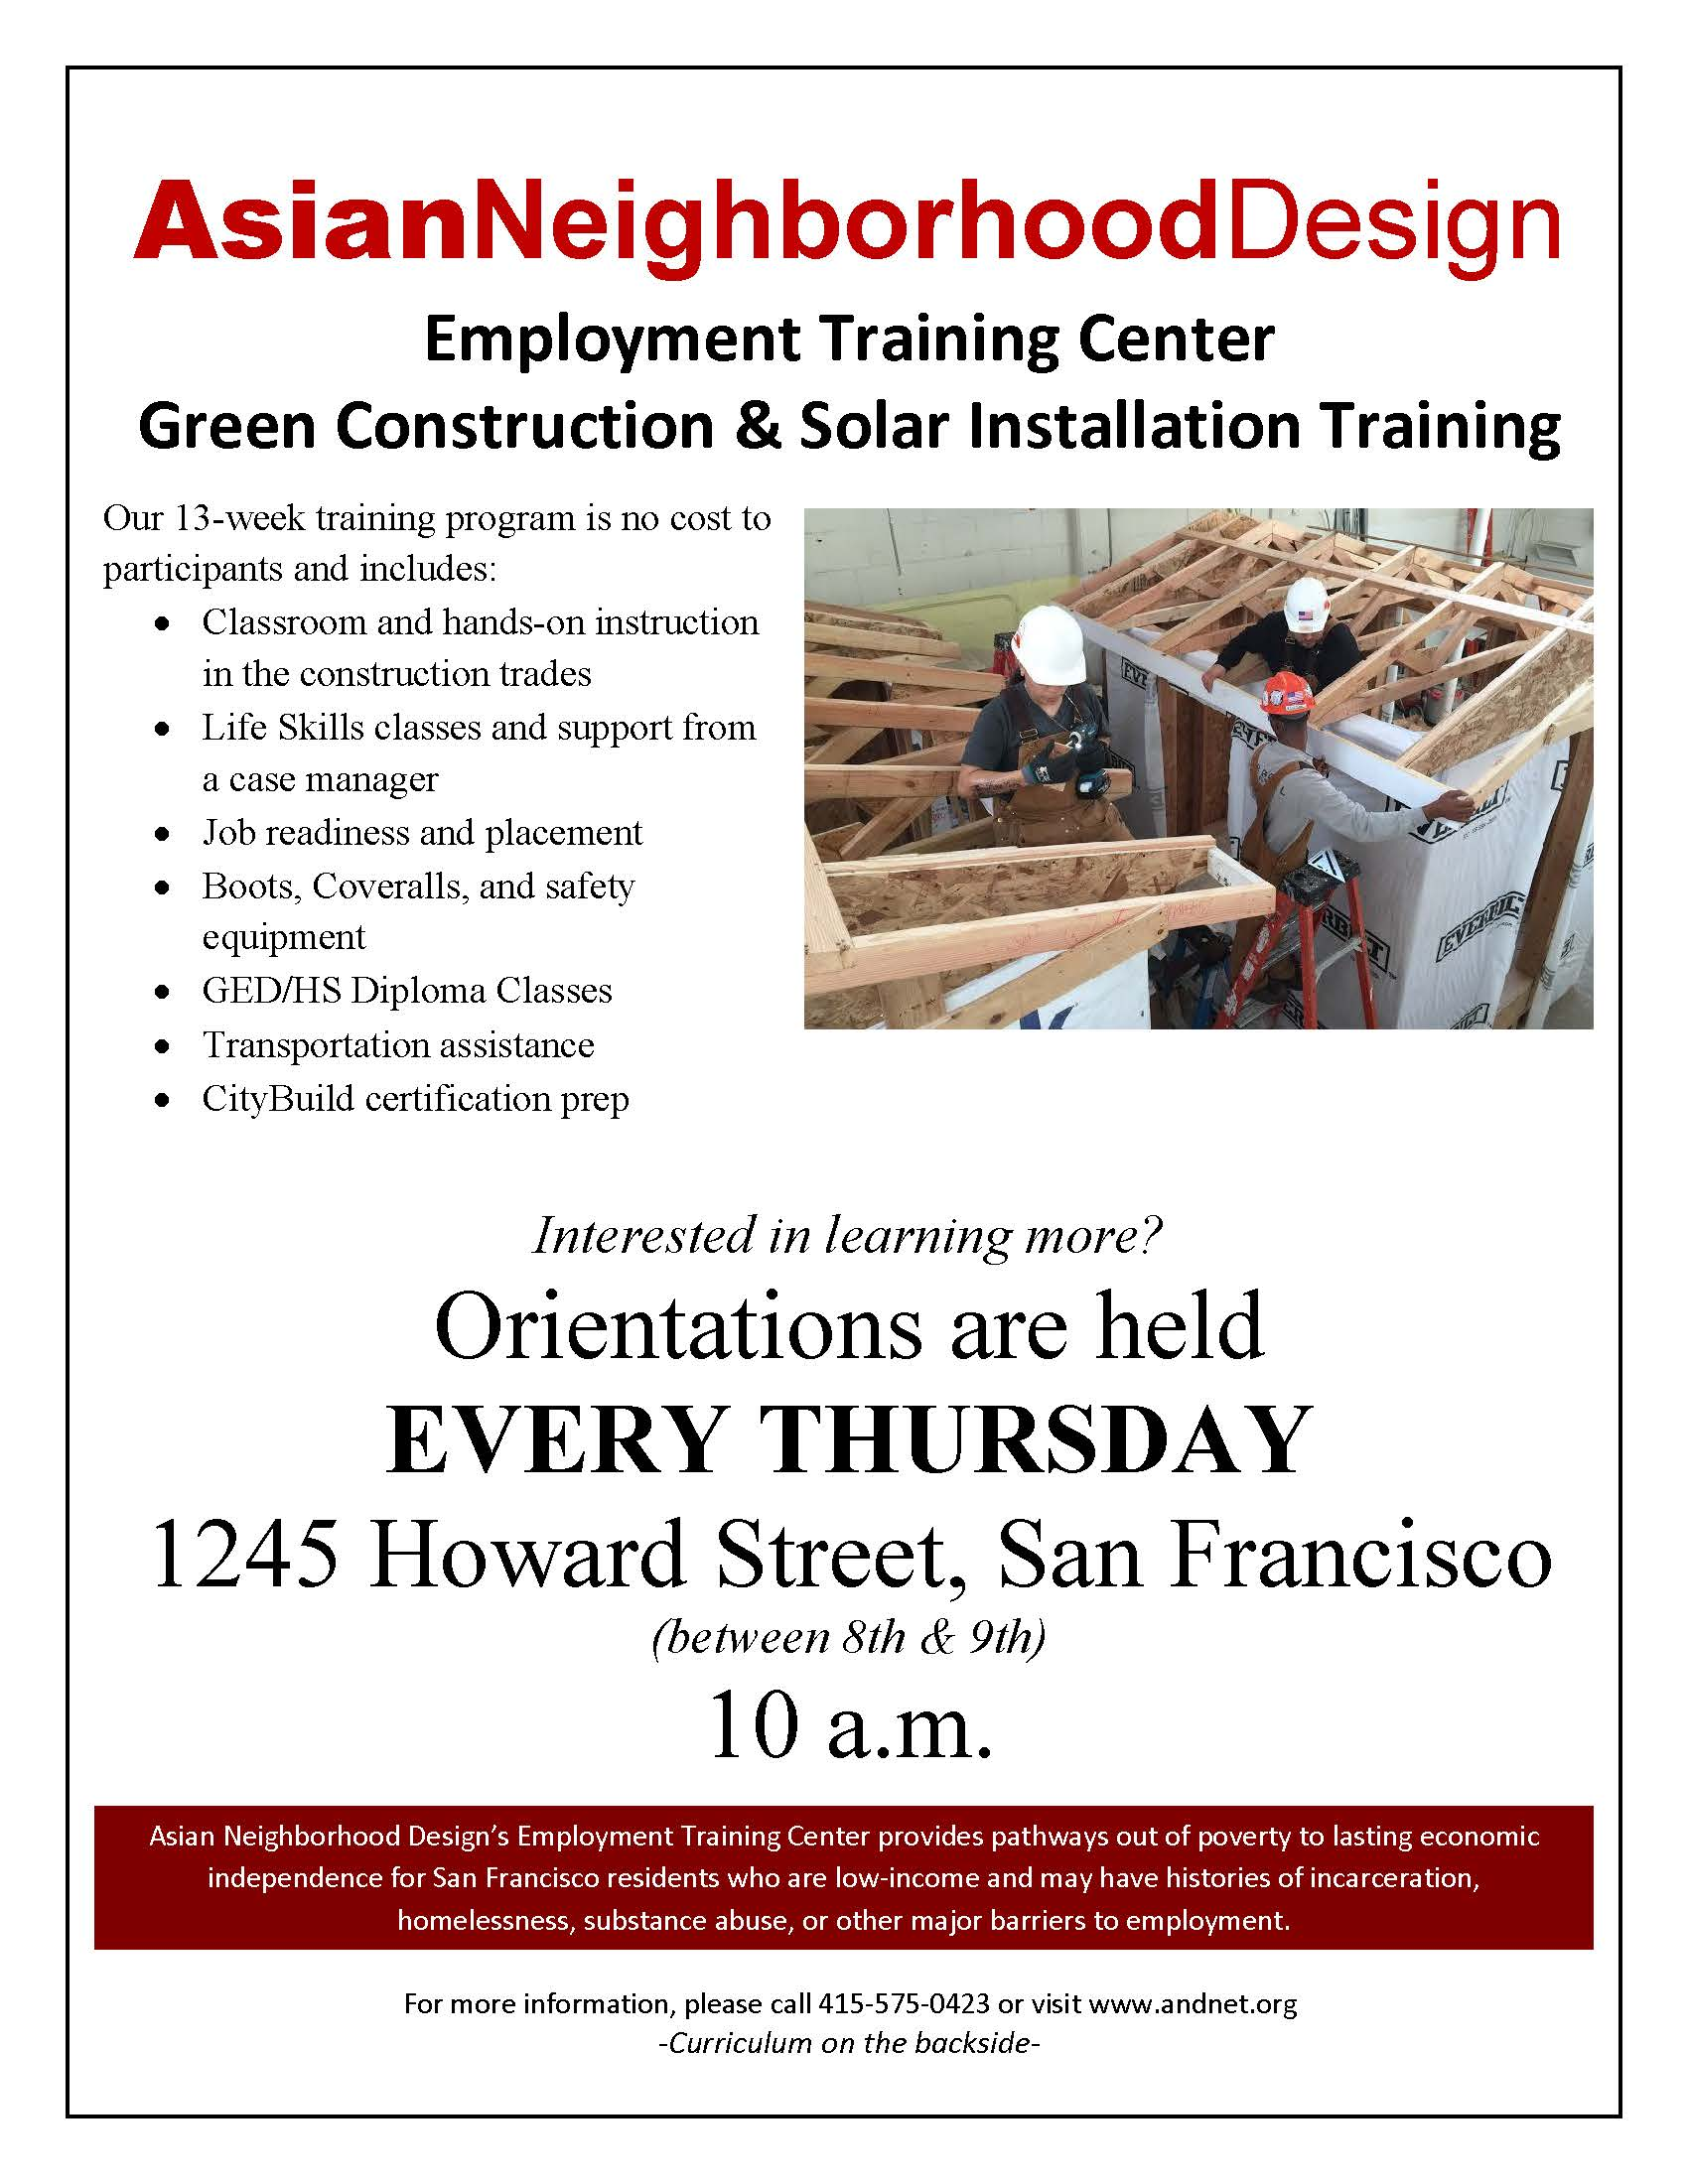 Asian Neighborhood Design Employment Training Center flyer